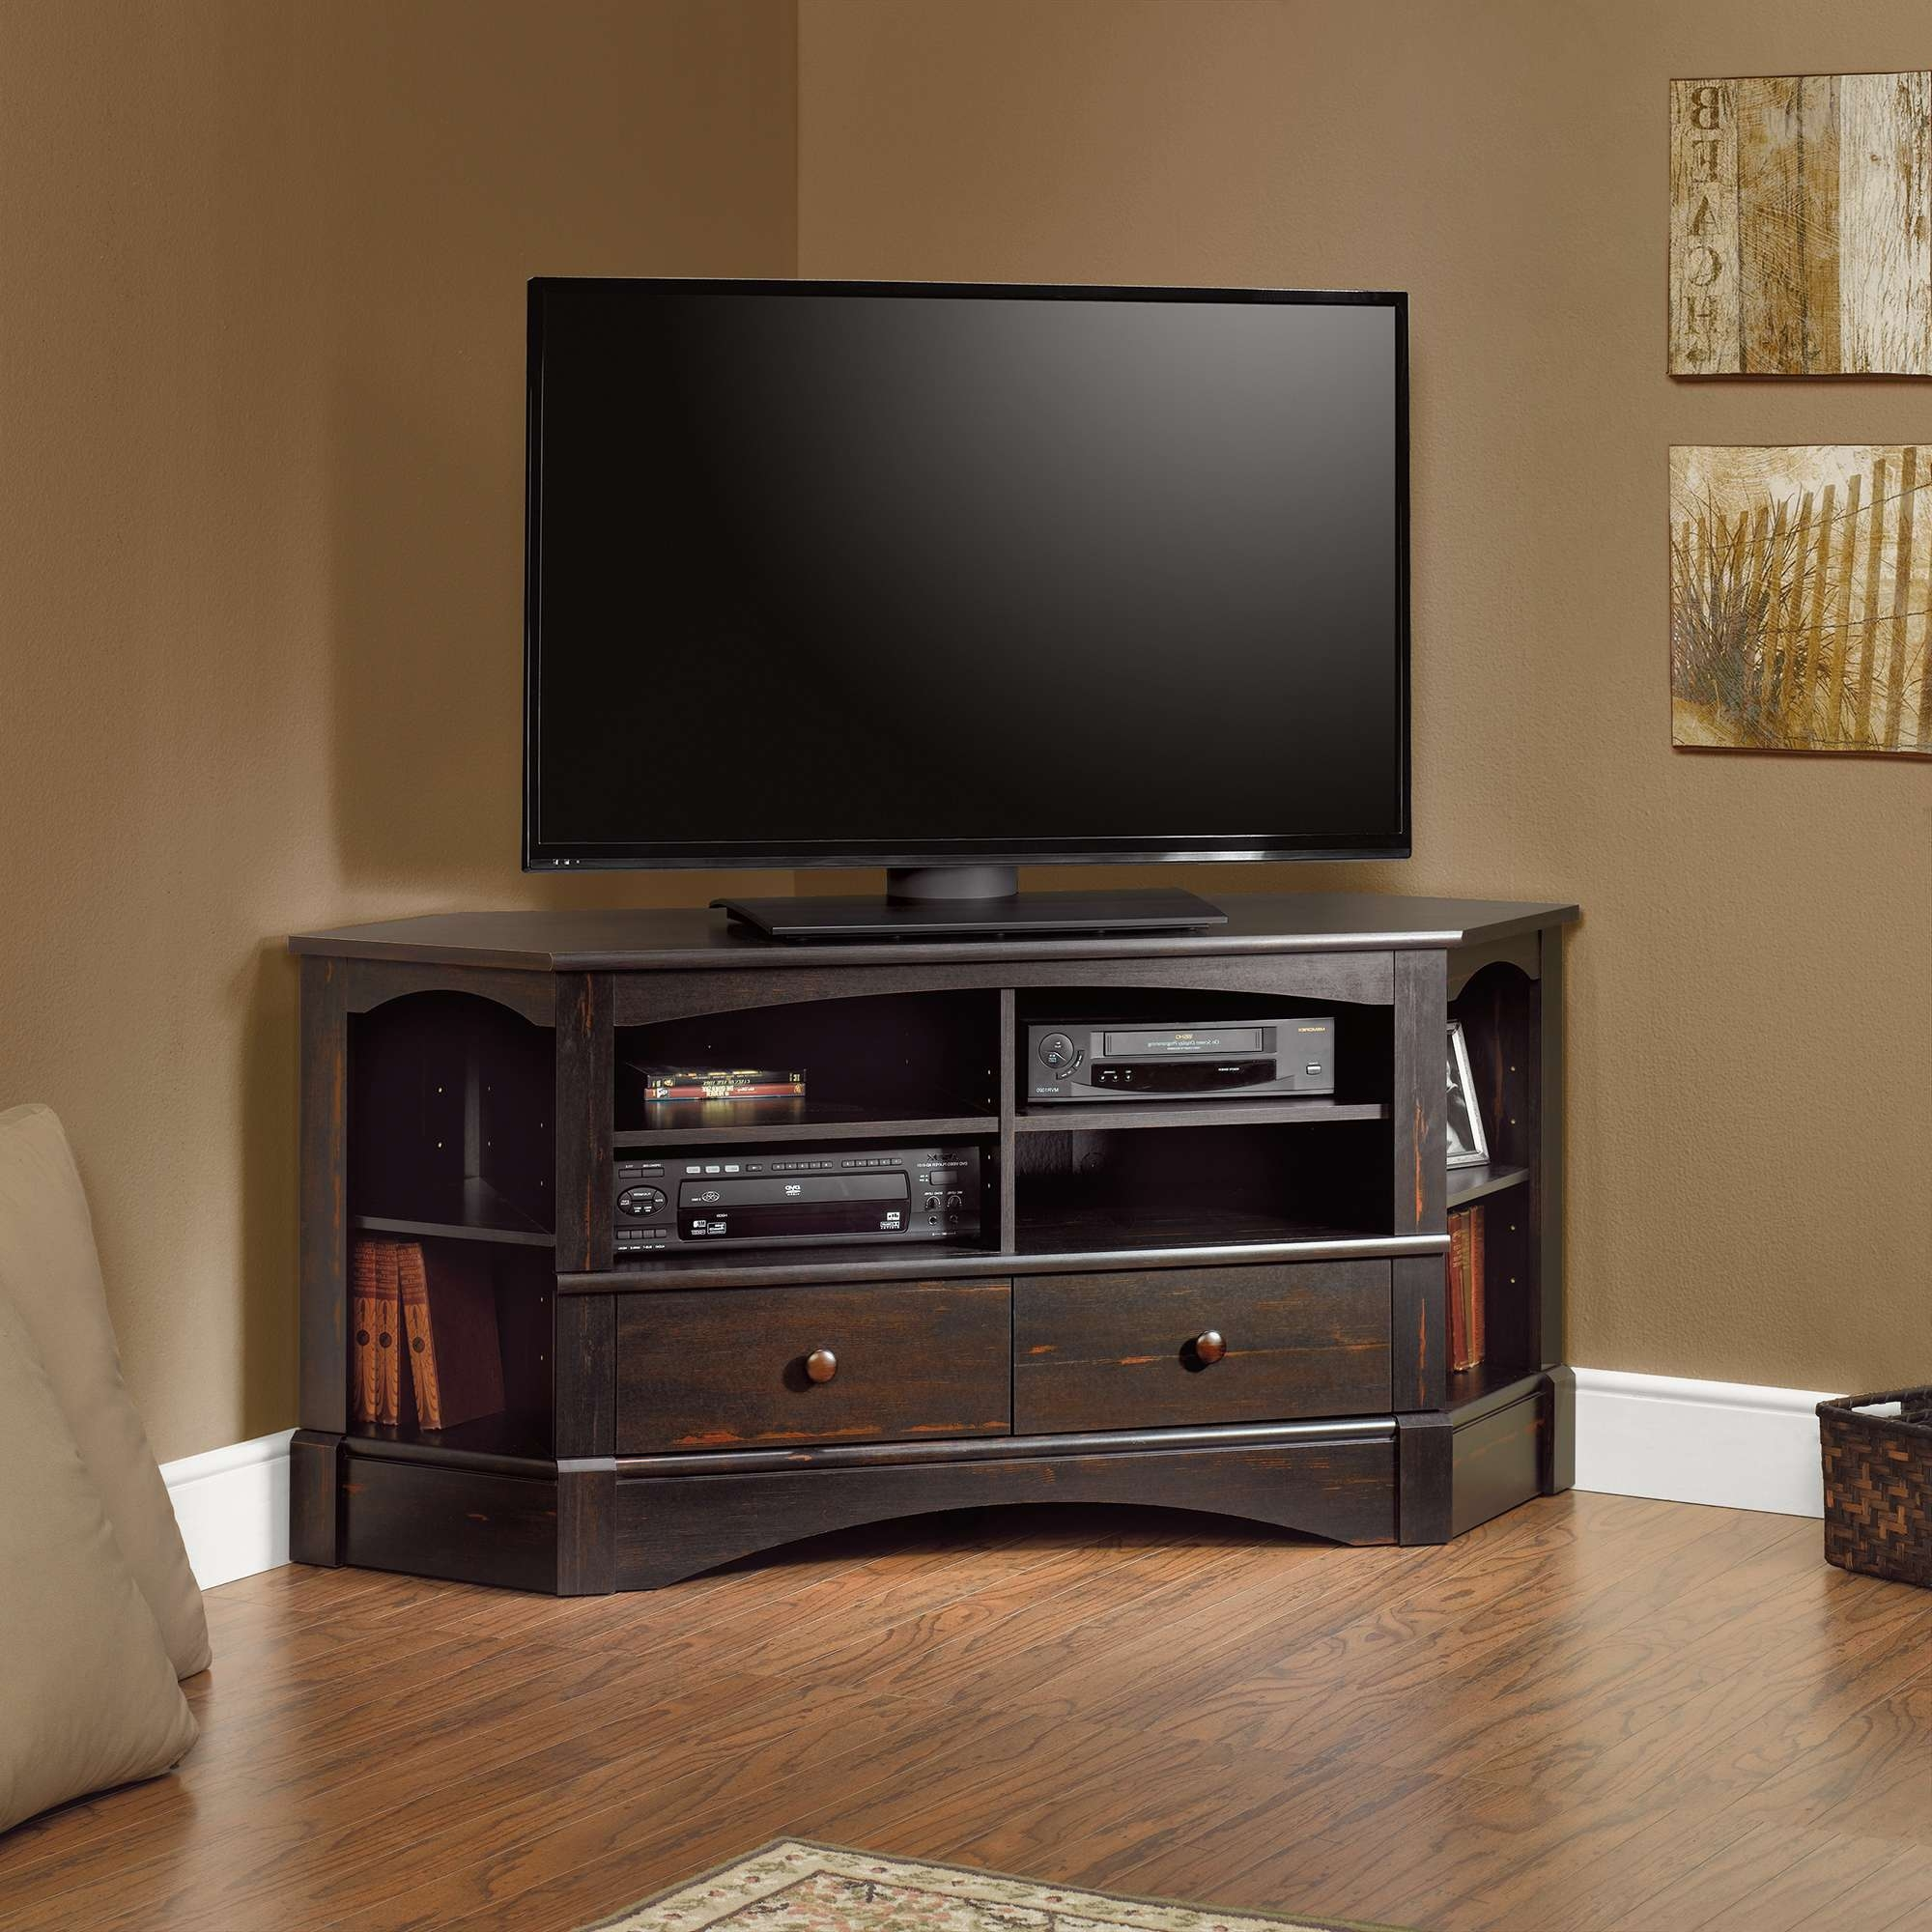 44 Inch Brown Wood Corner Tv Stand | Wood Corner Tv Stand, Corner Within Wooden Corner Tv Stands (View 5 of 15)